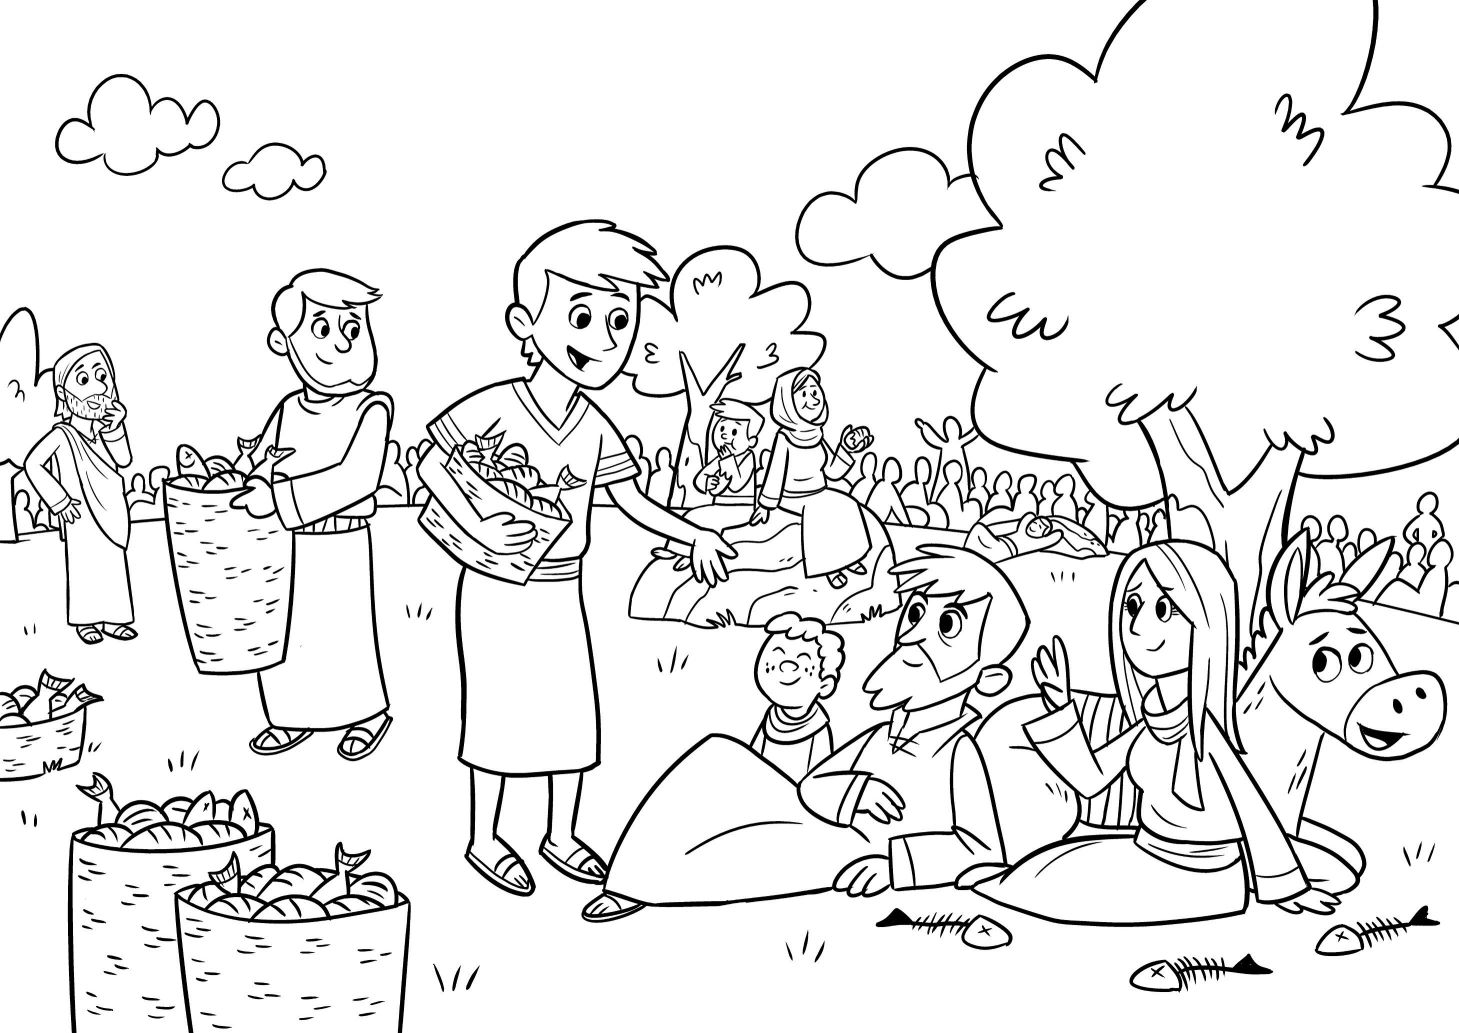 jesus feeds 5000 coloring page coloring pages jesus feeds 5000 coloring pages new 99 jesus 5000 page feeds coloring